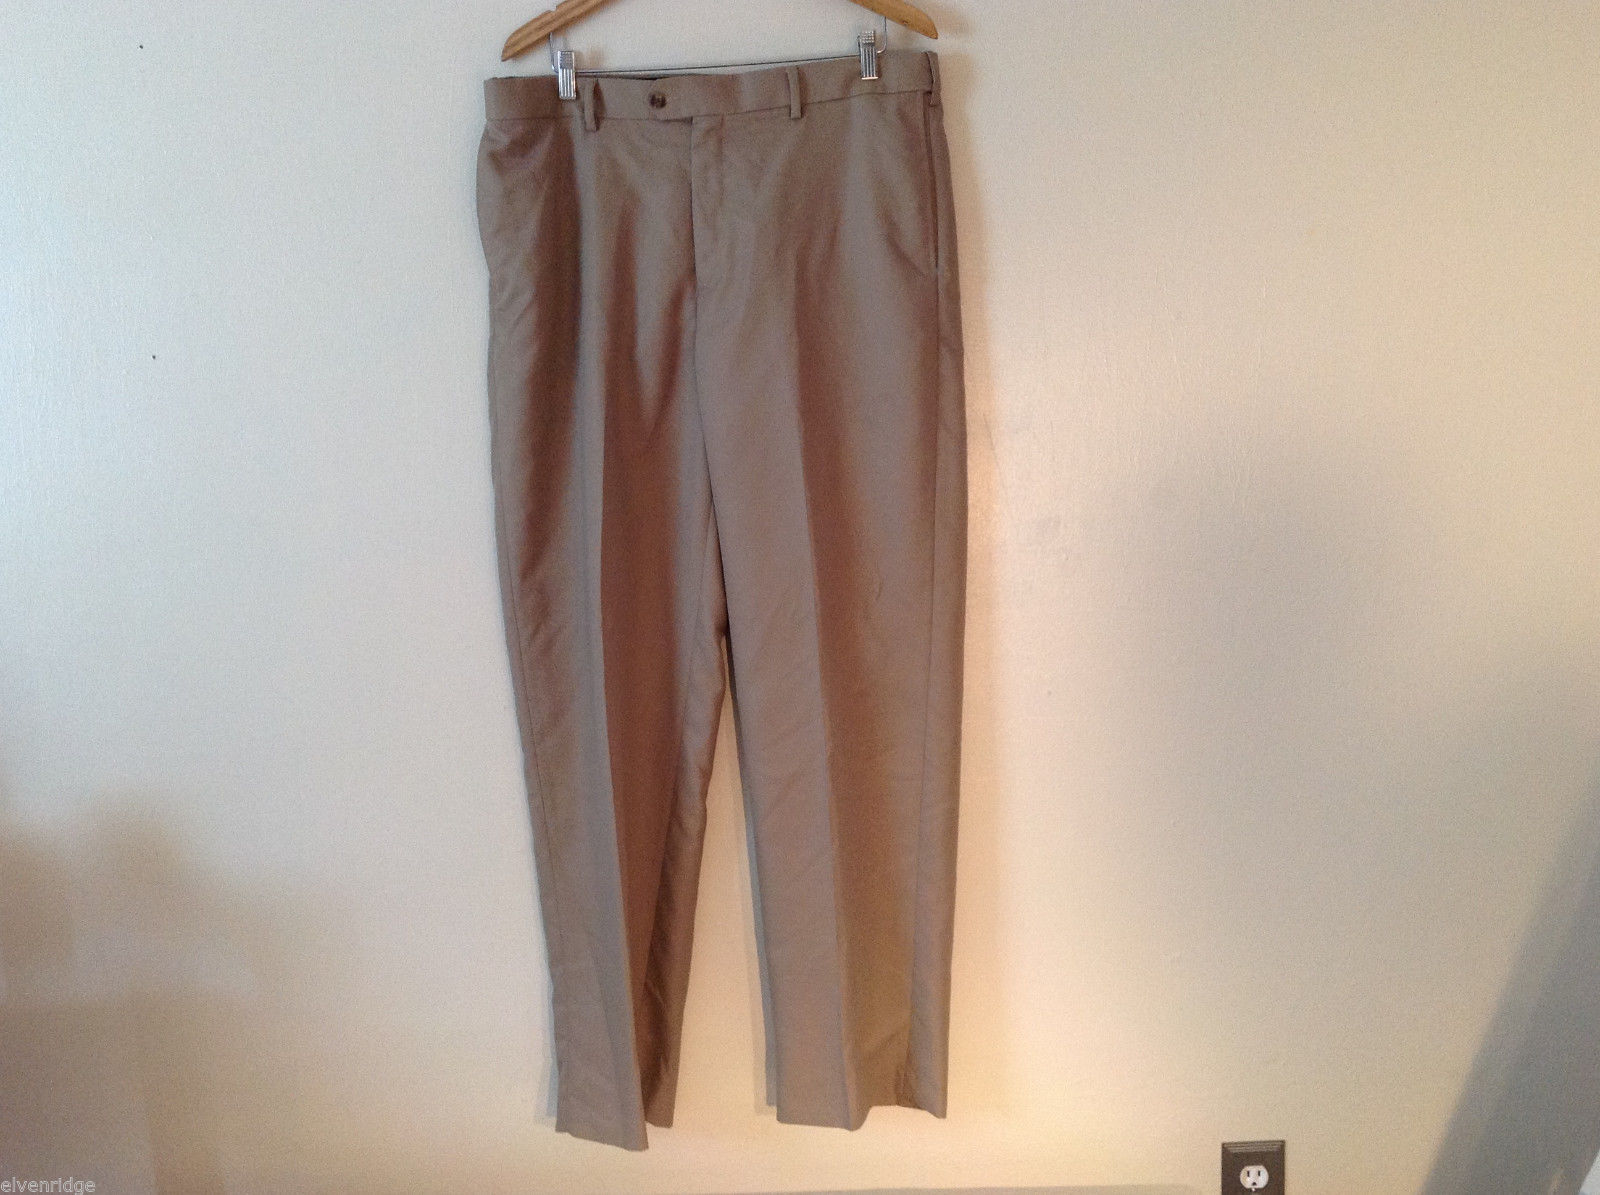 Croft & Barrow Men's Size L 38/34 Dress Pants Slacks Straight Leg in Beige Brown